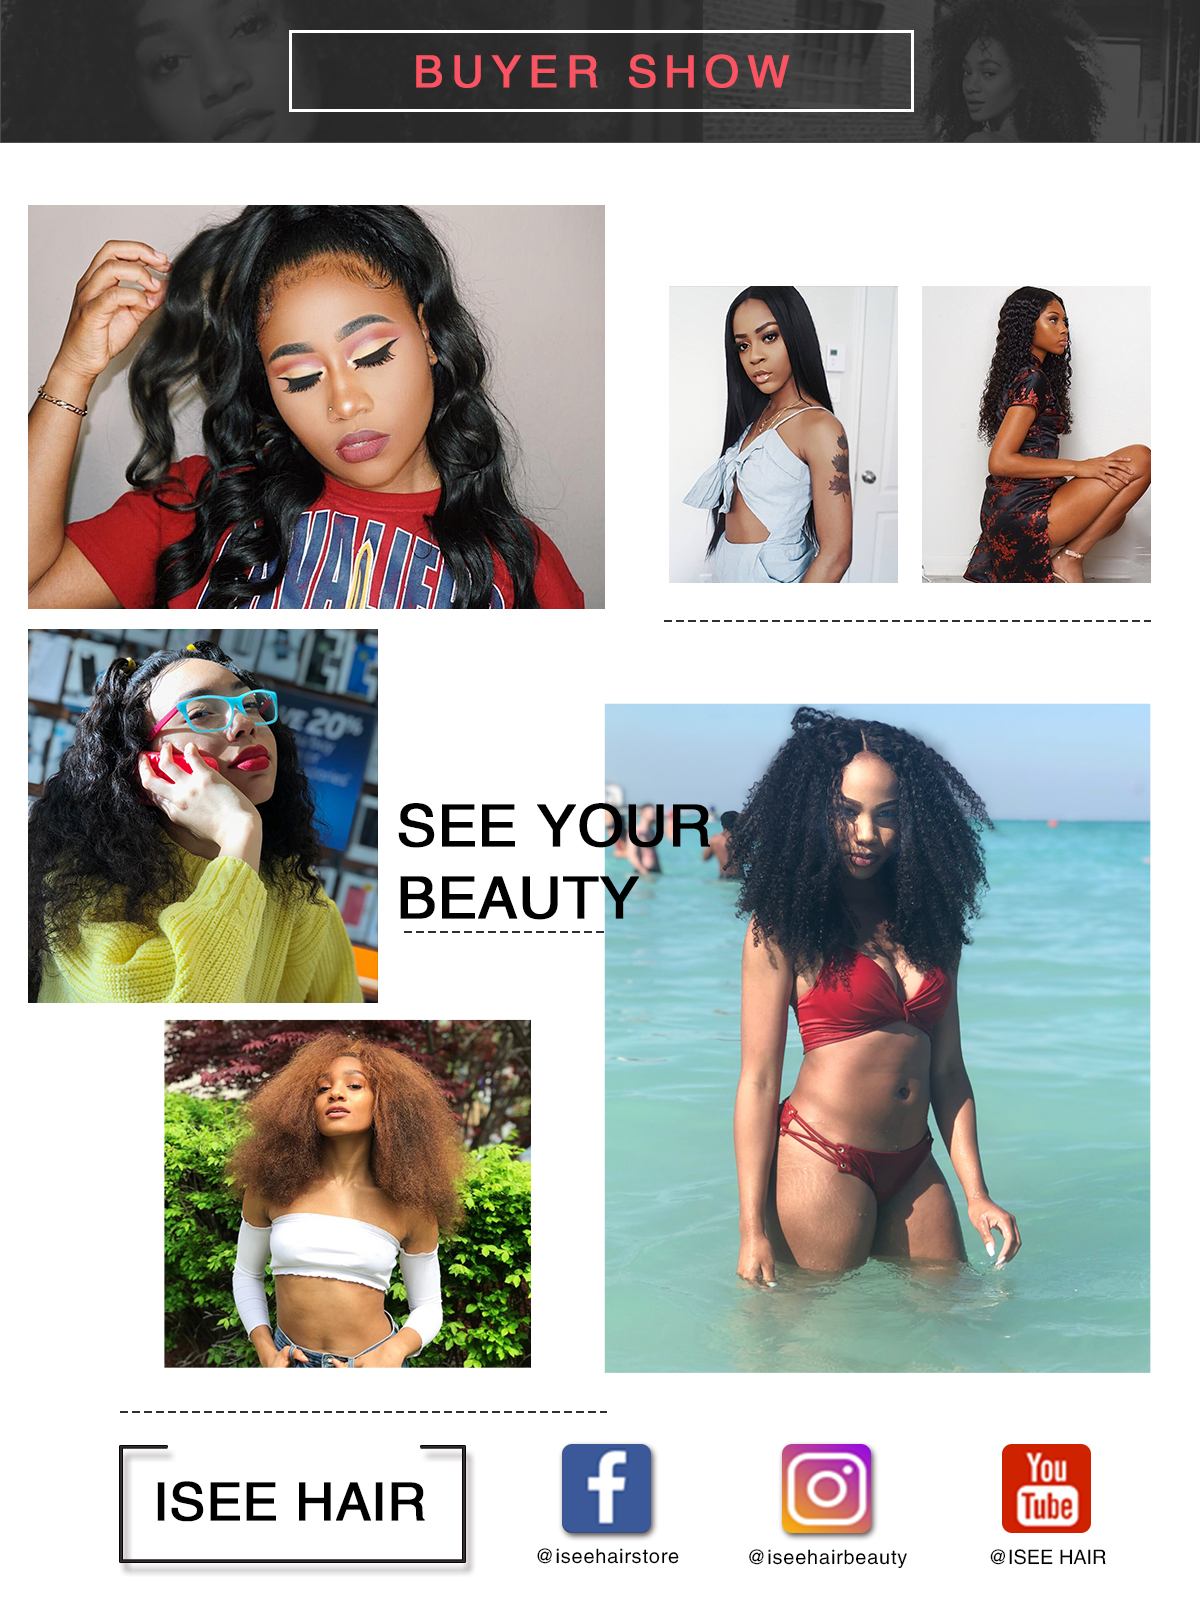 Buyer's show for ISEE Hair Brazilian body wave bundles, straight hair bundles, deep curly bundles with closure deal, kinky curly bundles deal